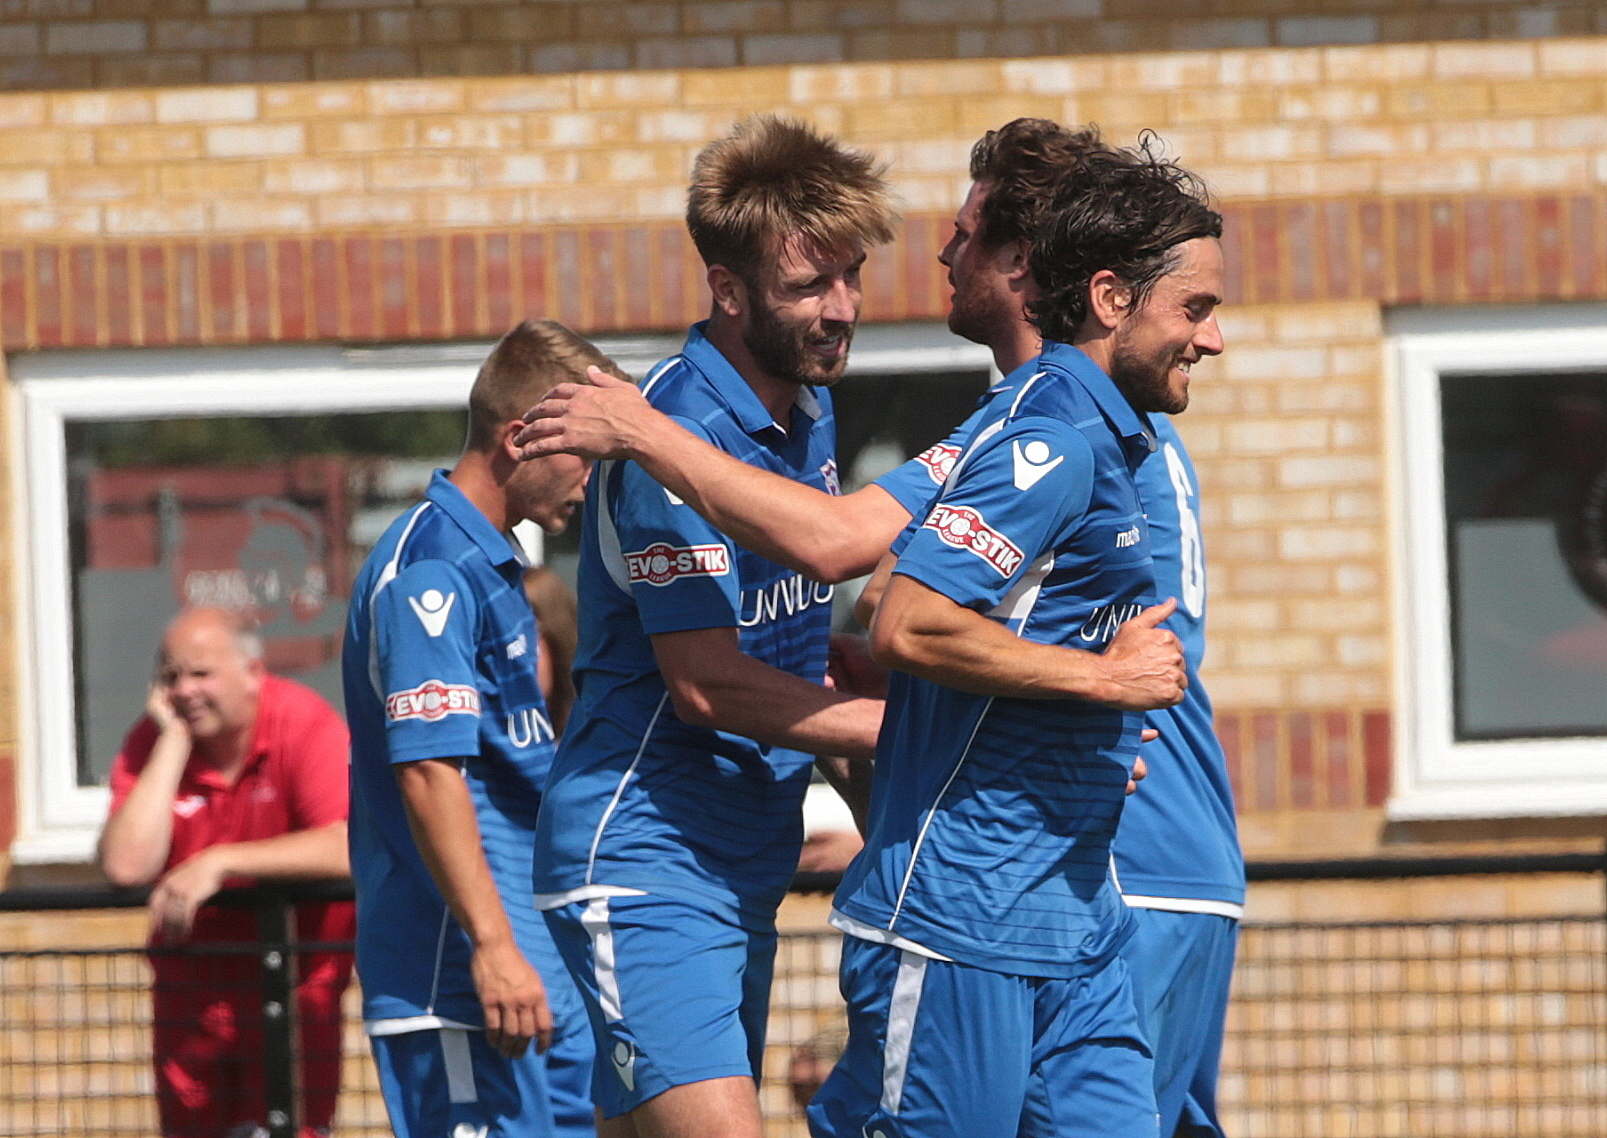 Conor McDonagh celebrates a goal for Swindon Supermarine against Cirencester Town. PICTURE: JEFF YOUD